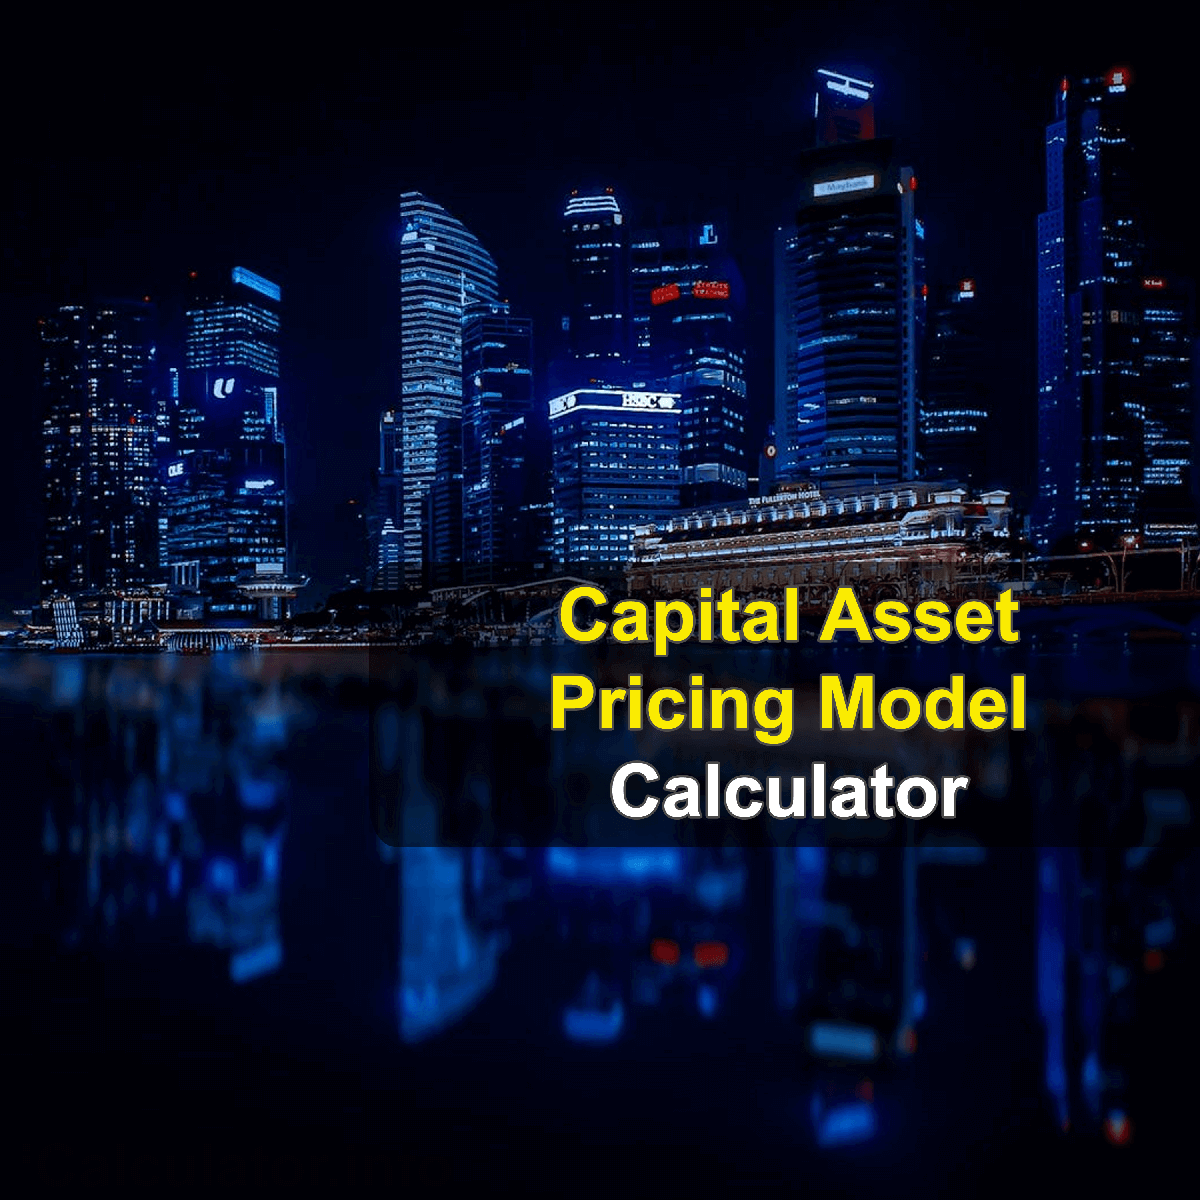 Capital Asset Pricing Model Calculator. This image provides details of how to calculate the break even point using a calculator and notepad. By using the capital asset pricing model formula, the CAPM Calculator provides a true calculation of the value of your investments while taking those risks into account.